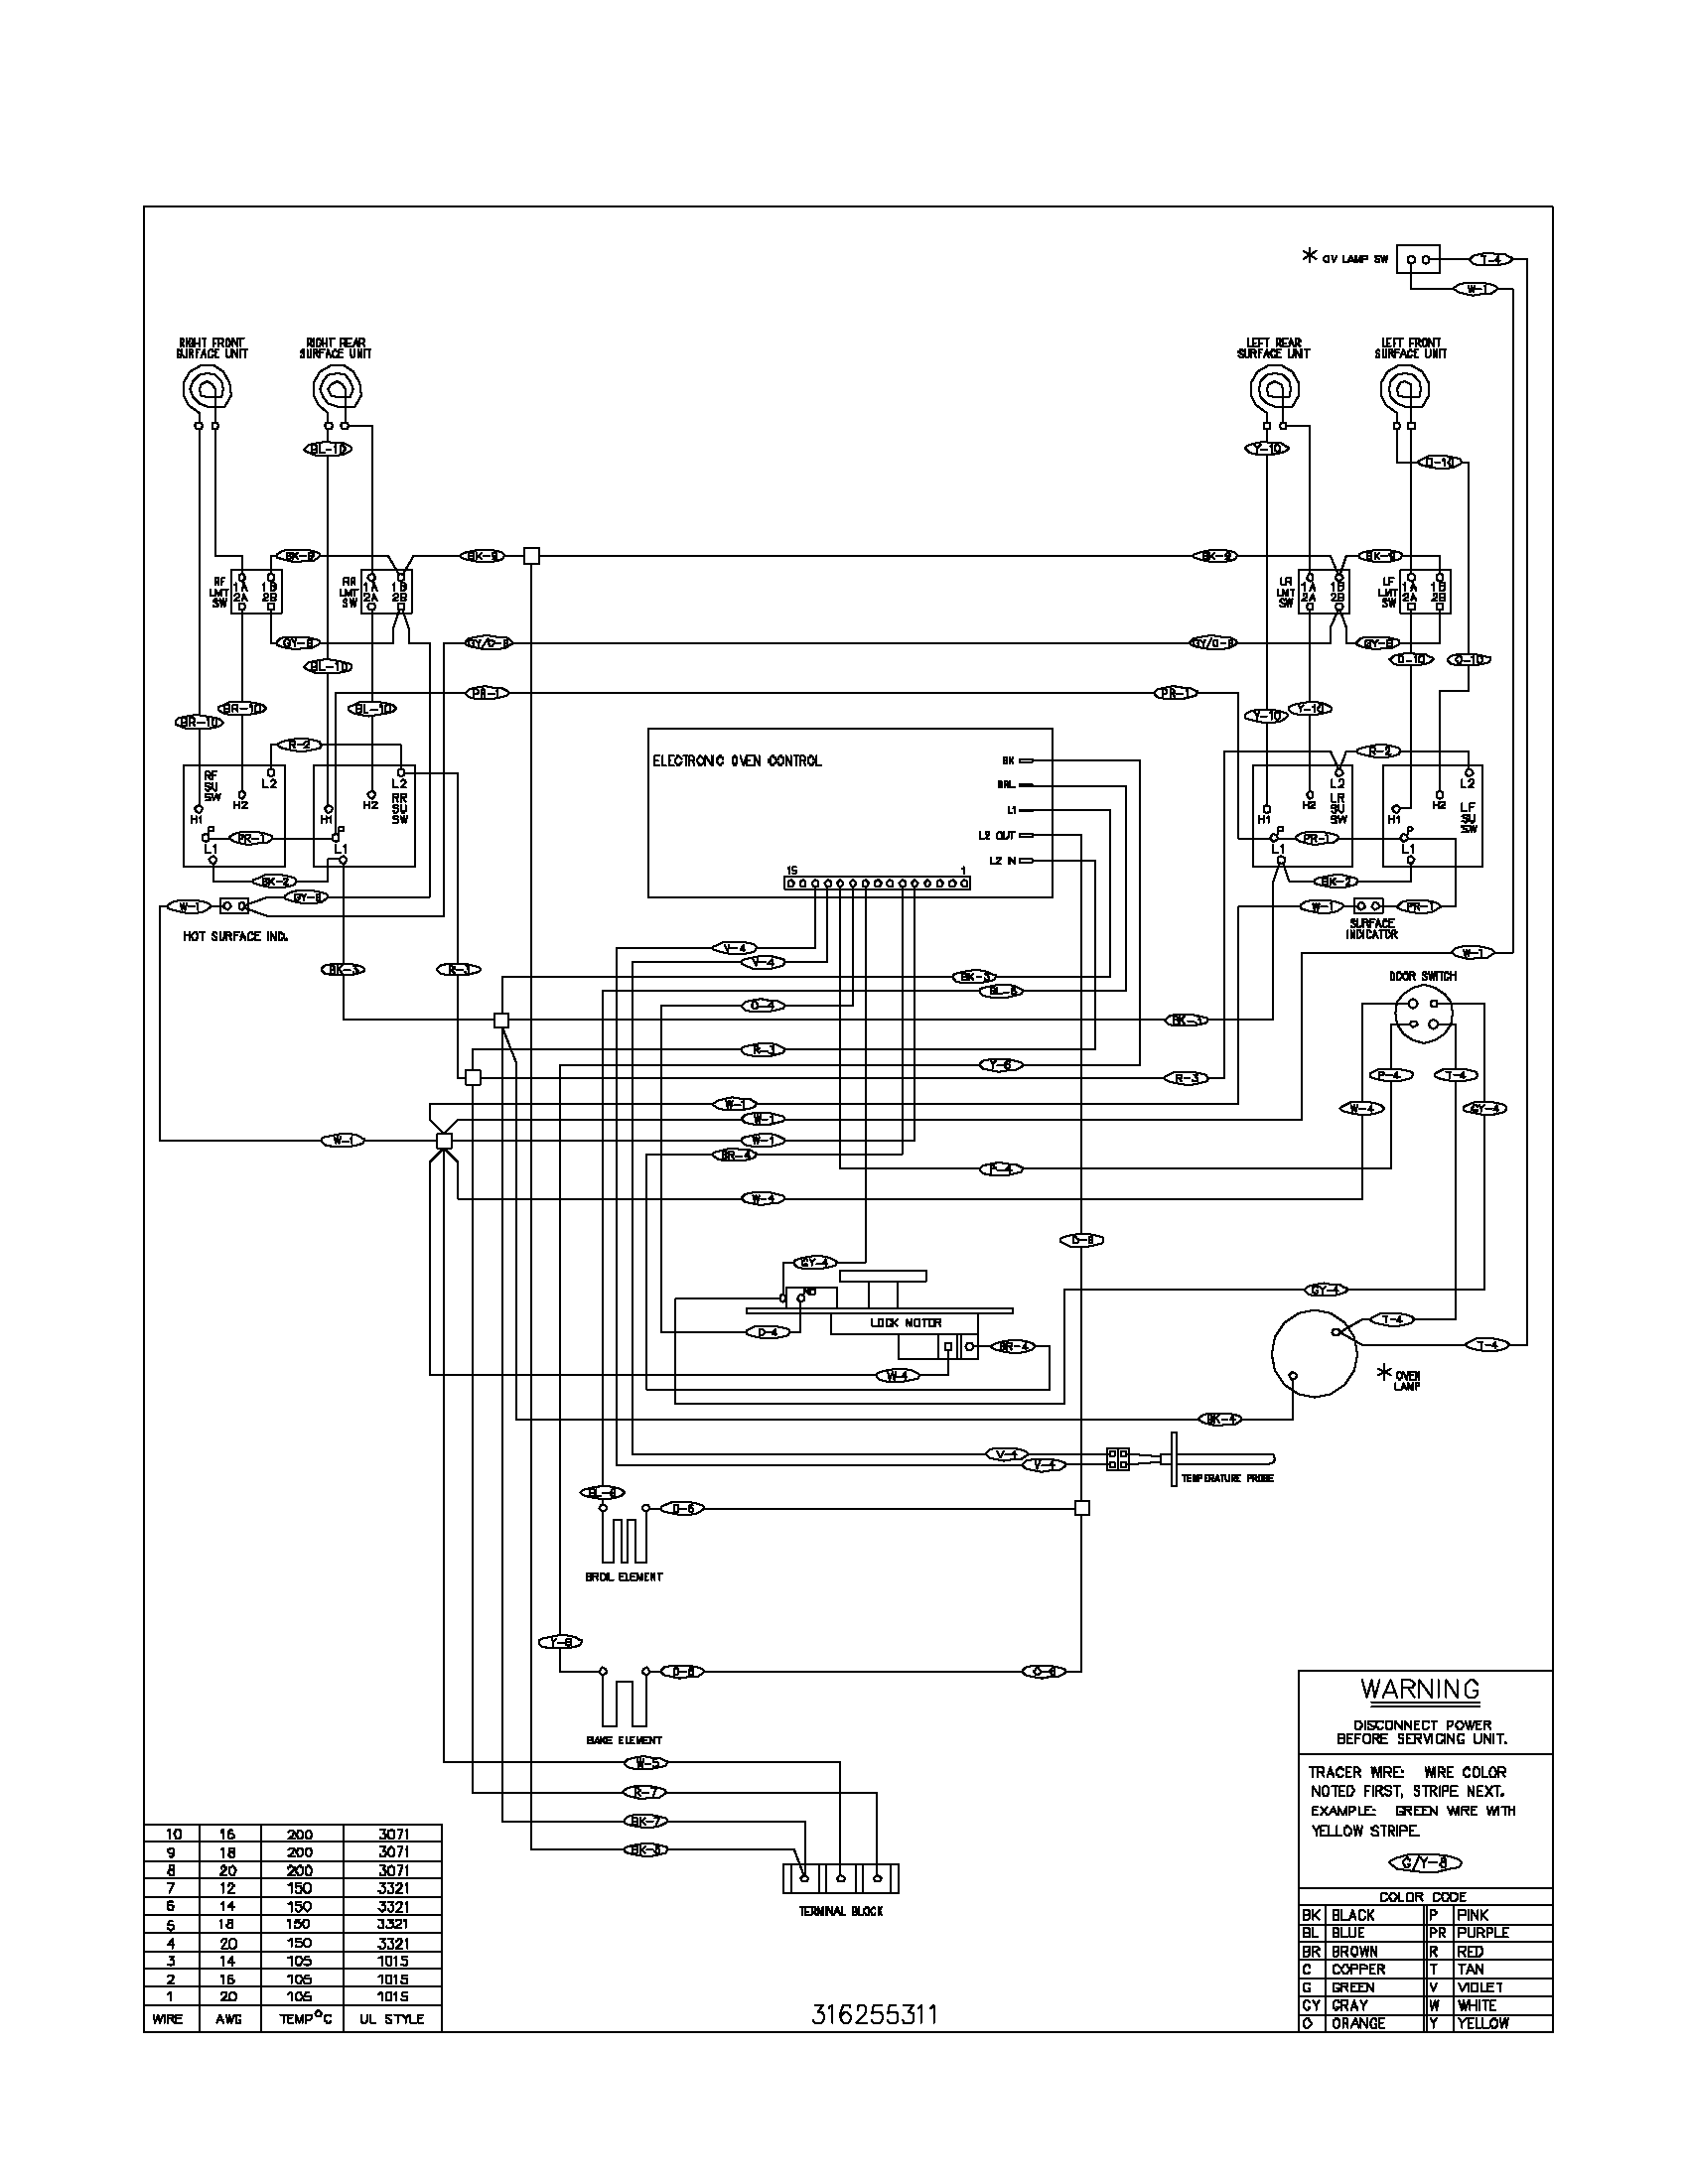 electric cooktop switch wiring diagram electric cooktop switch electric cooktop switch wiring diagram frigidaire fef366ccb electric range timer stove clocks and